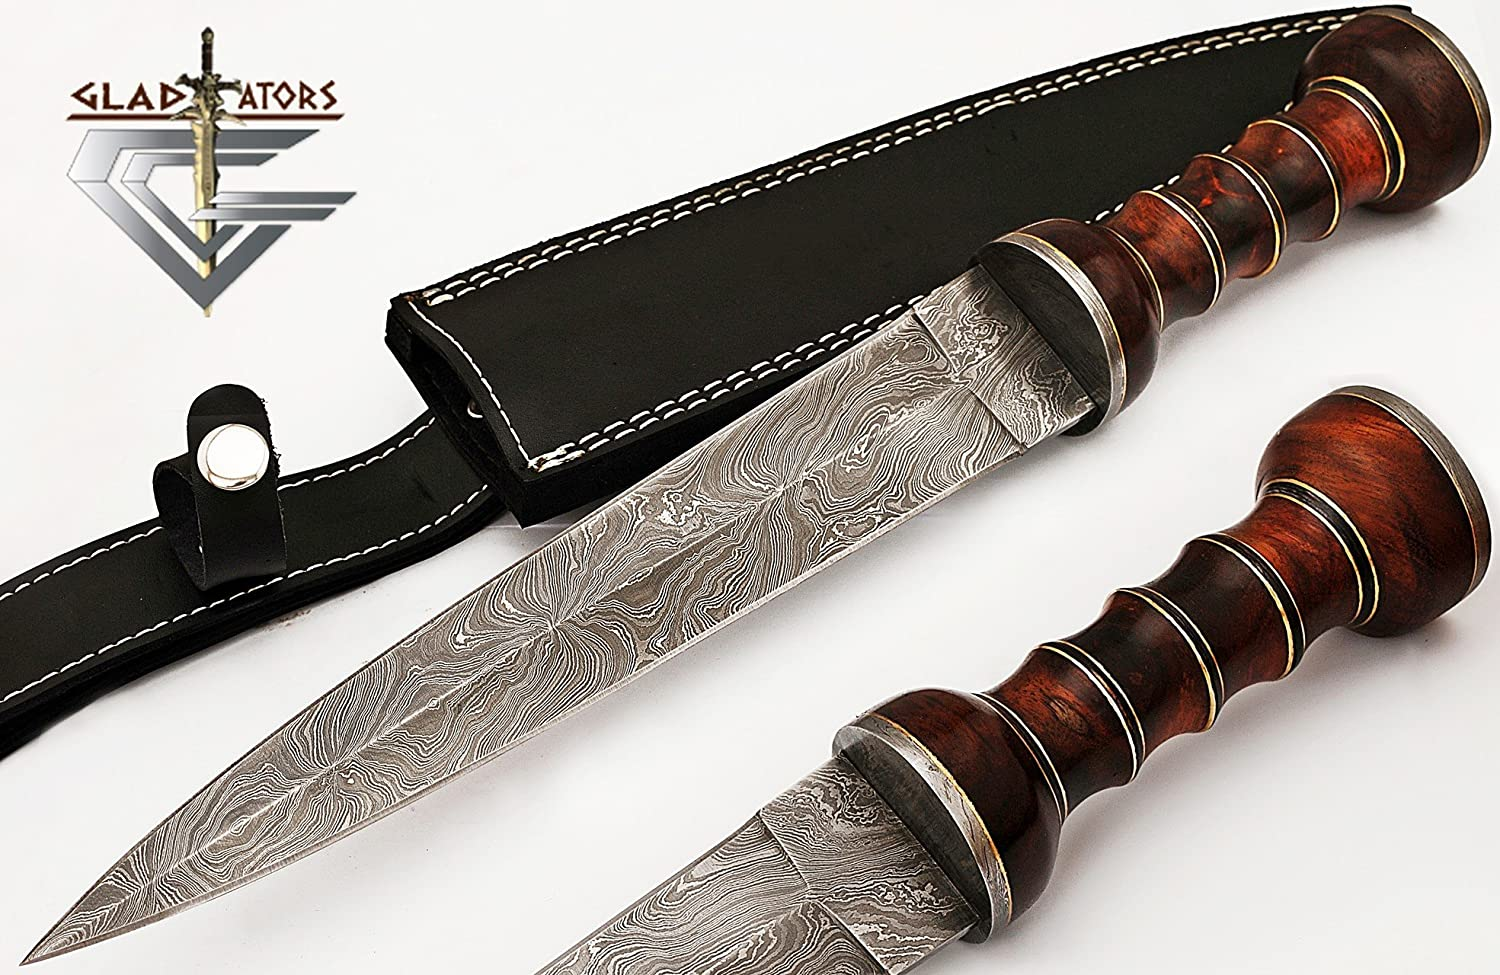 2607 Custom Handmade Damascus Steel Roman Gladius Sword Dagger knife Short Sword Red Wood Handle (Replica)  by GladiatorsGuild